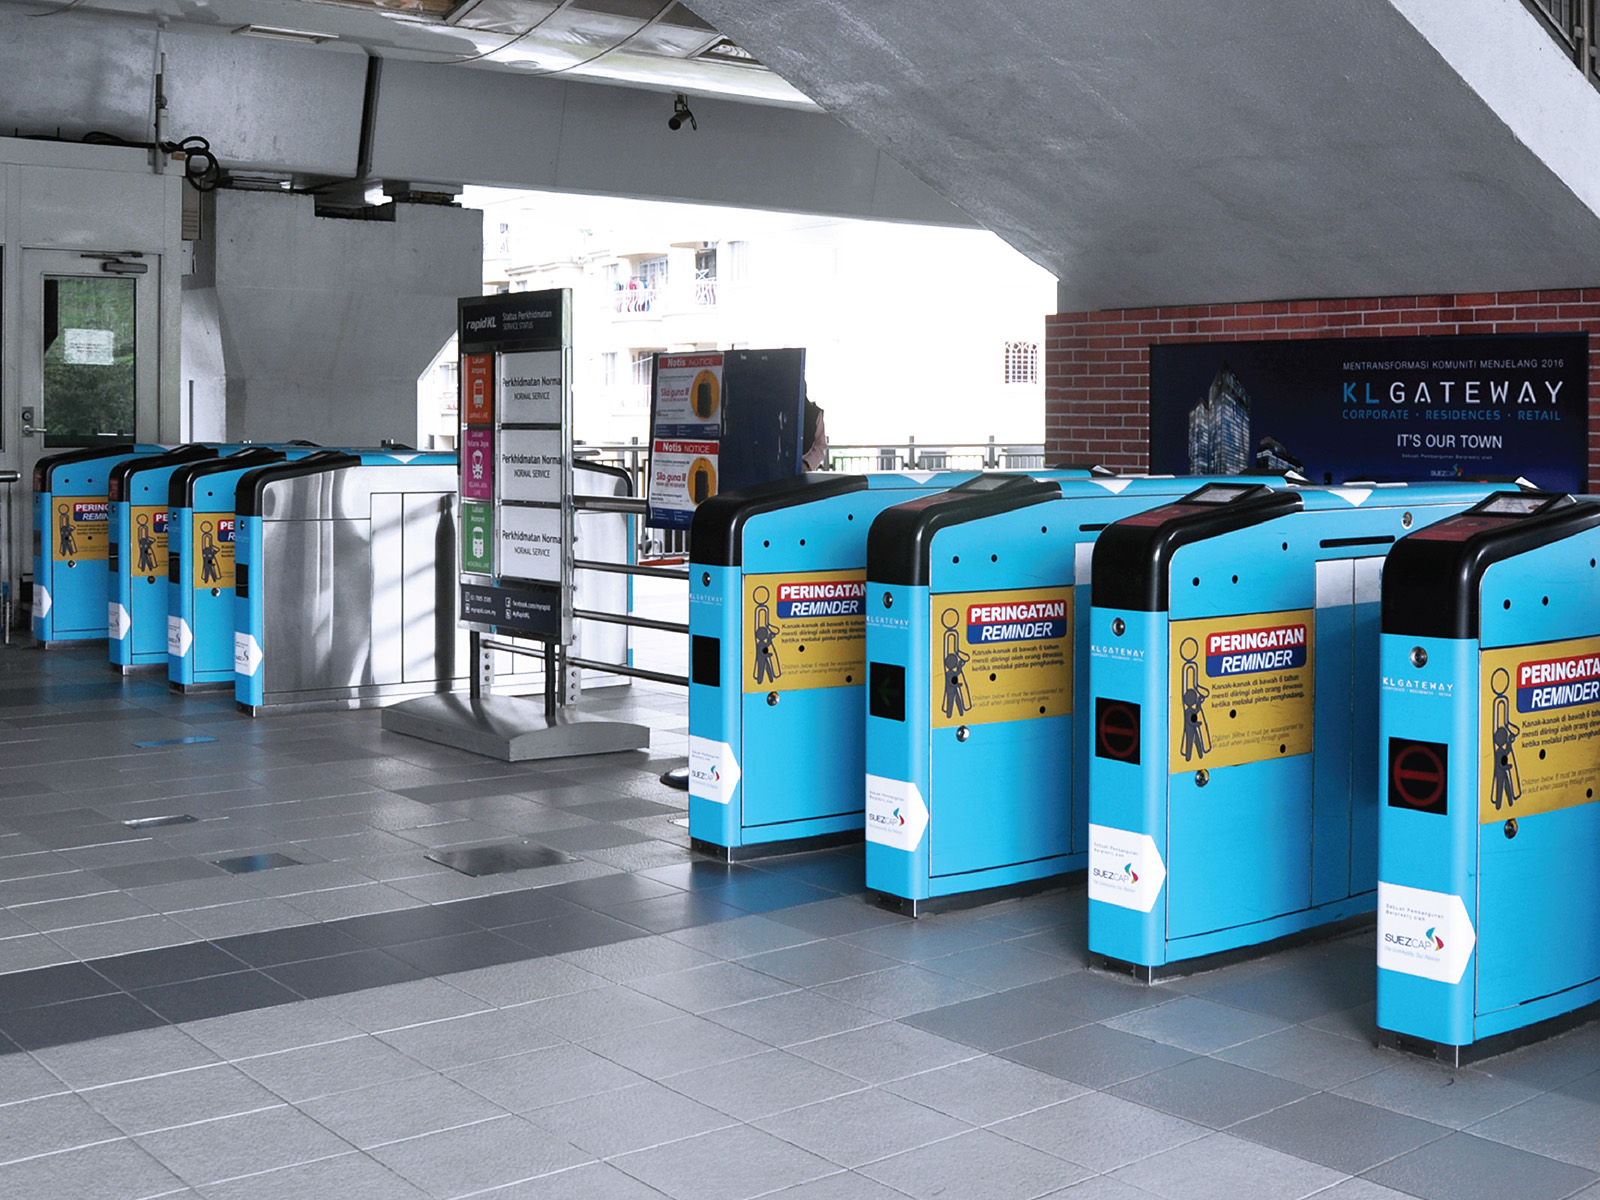 KL Gateway by Suezcap train station brand advertisement takeover sees the ticketing machine wrapped in brand ad